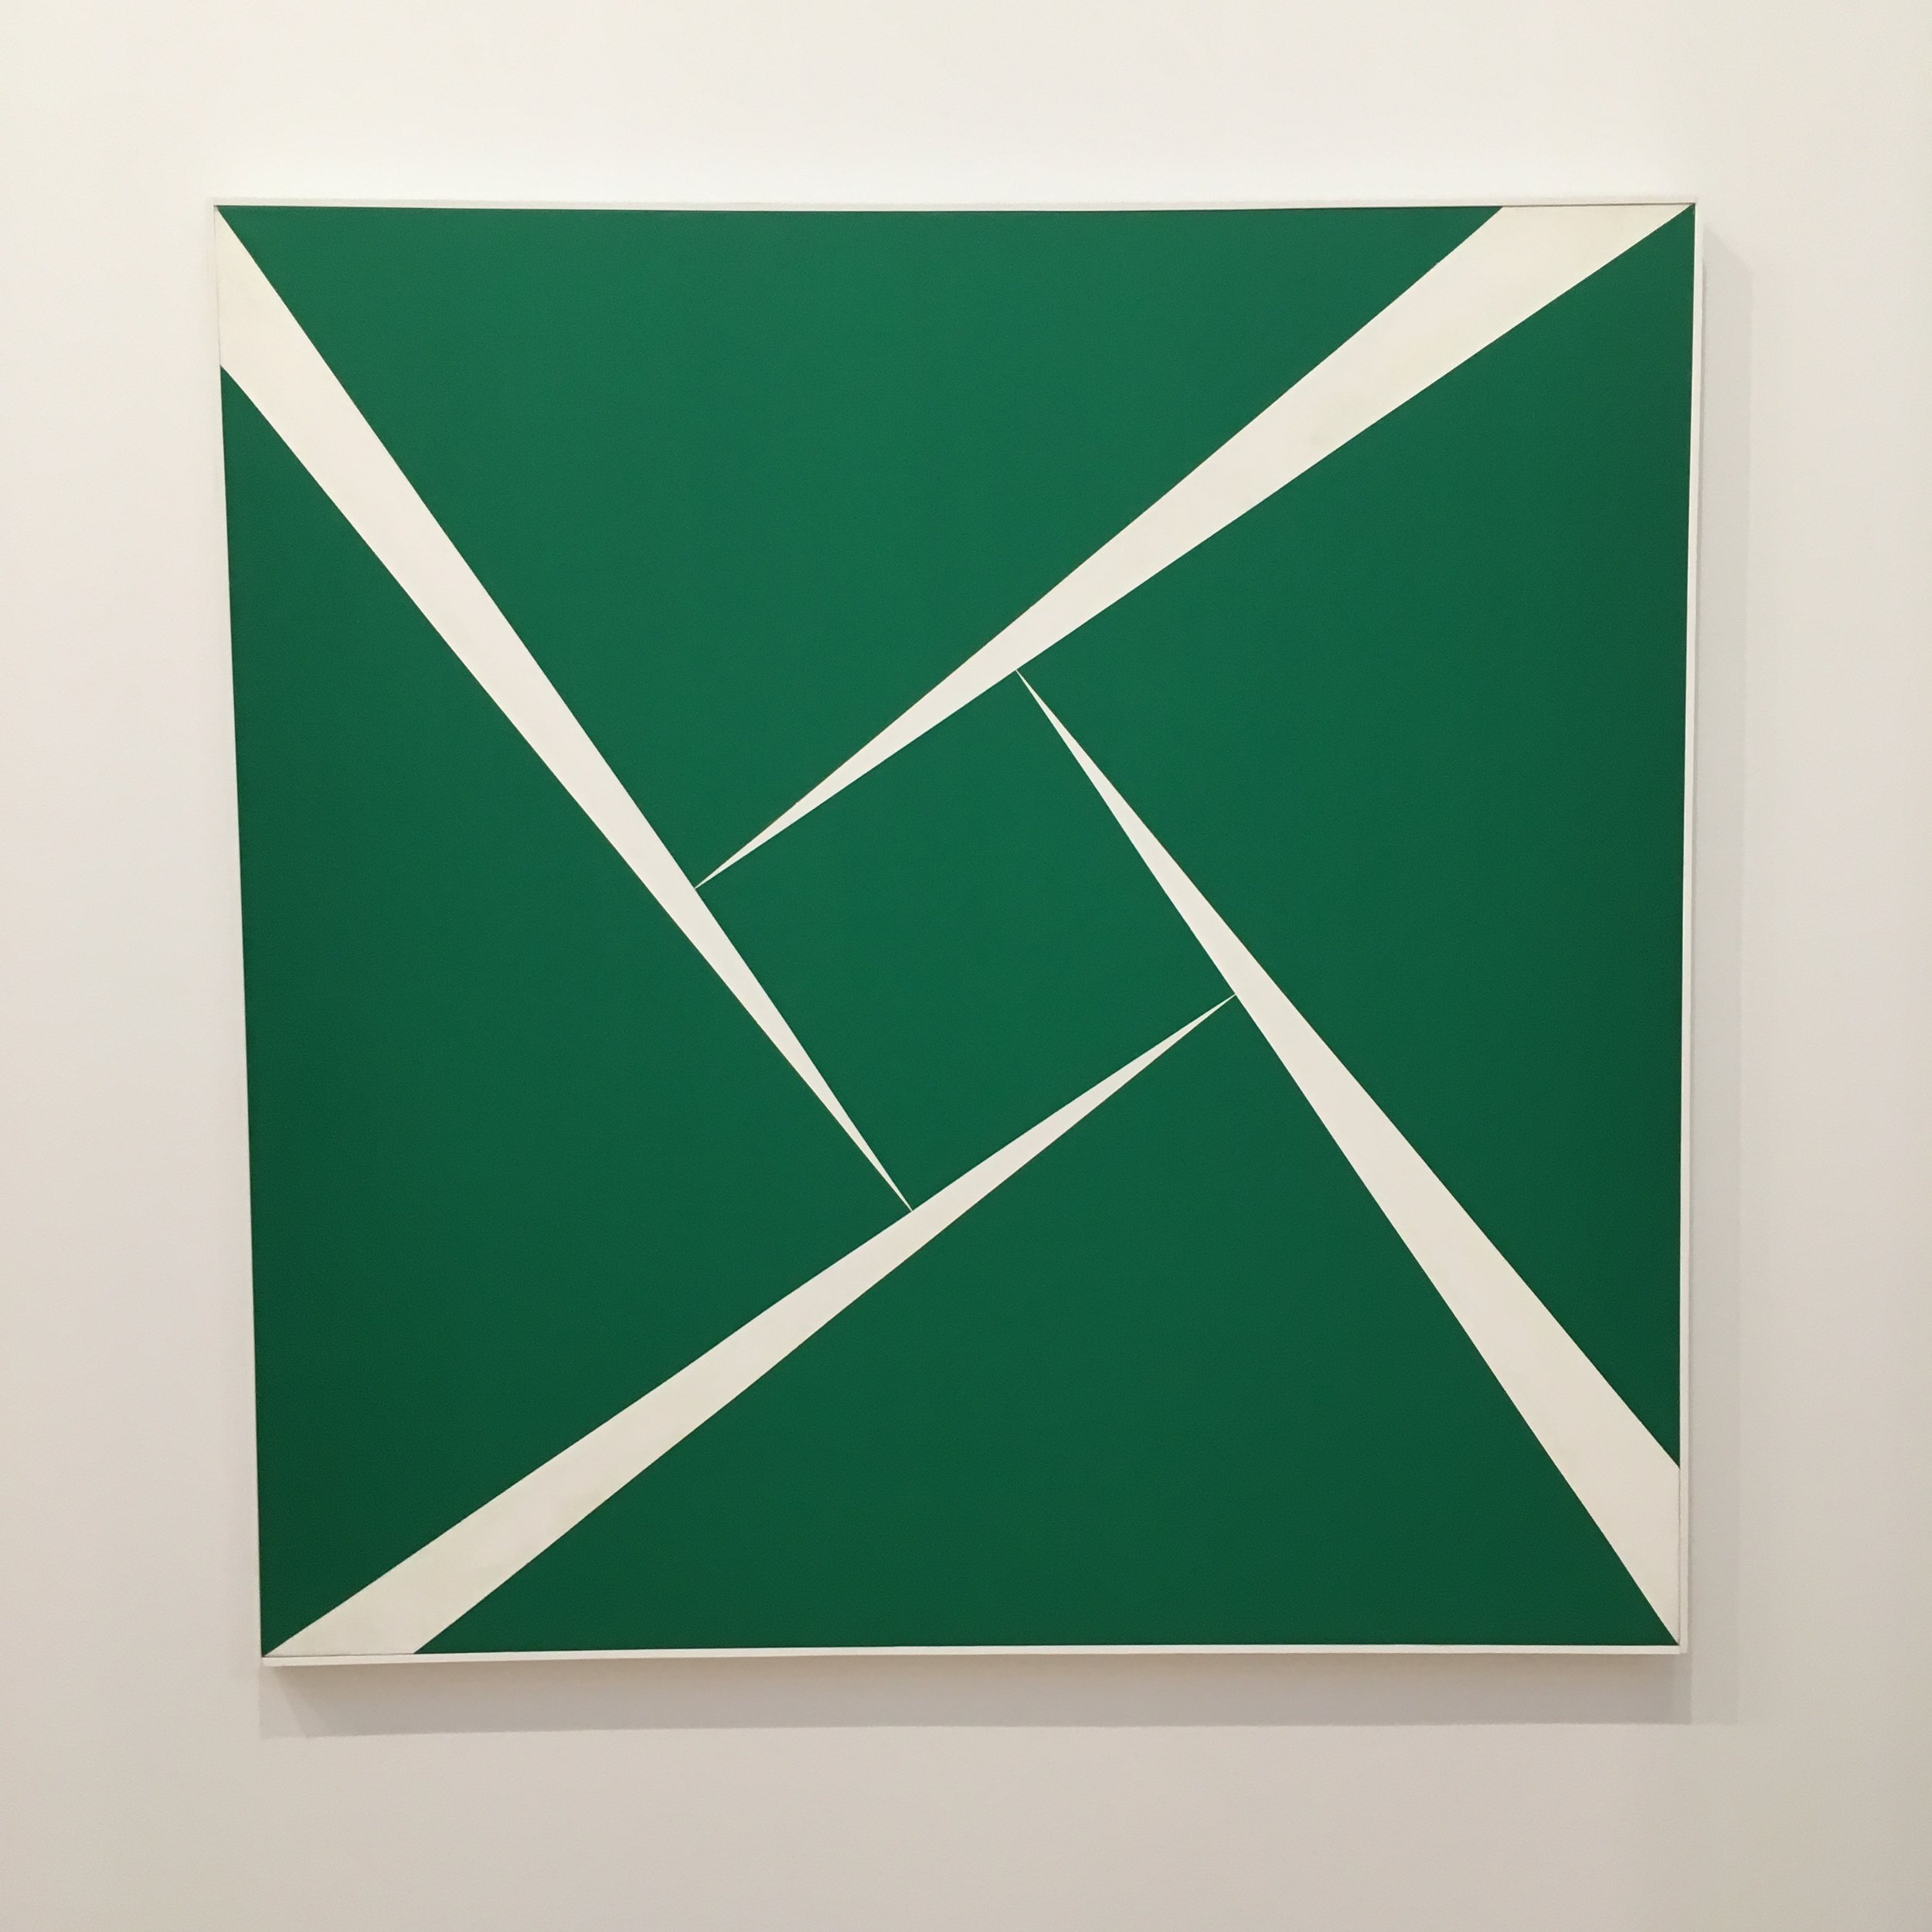 Carmen Herrera: Lines of Sight Exhibit